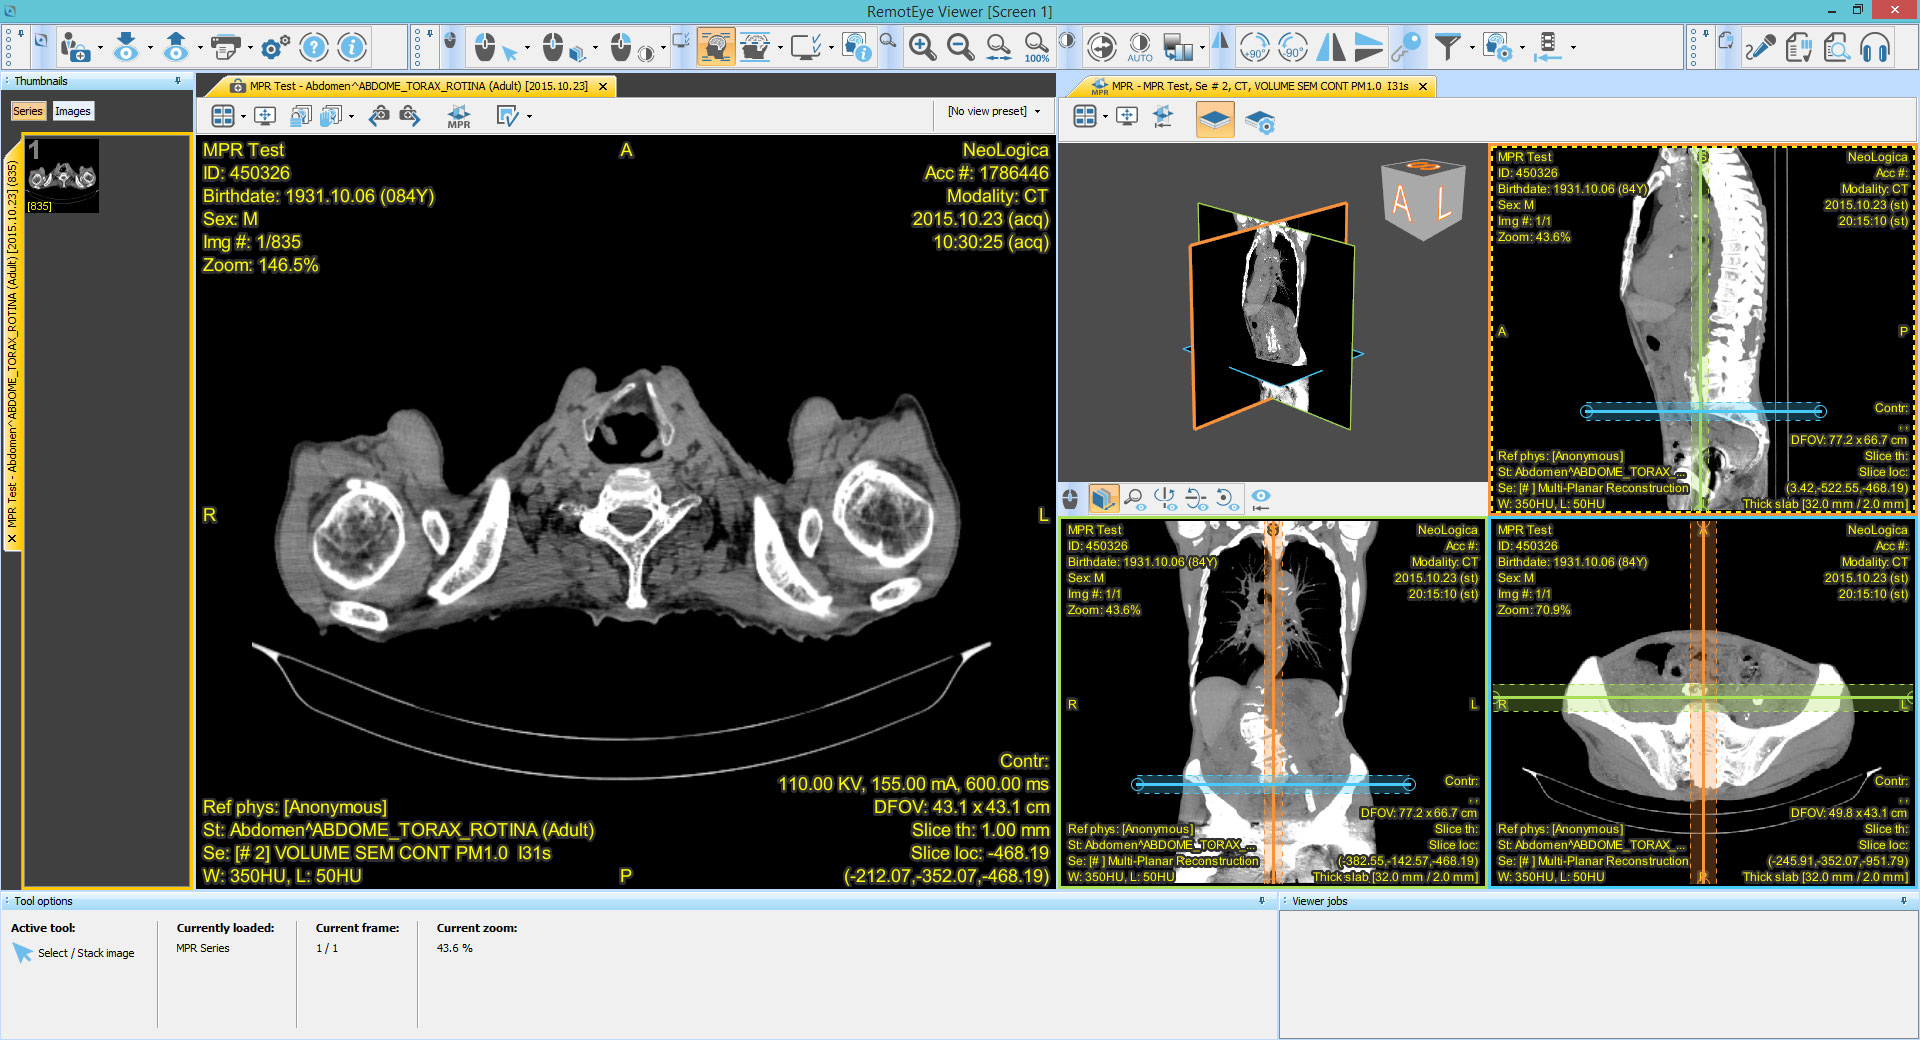 Web DICOM Viewer - RemotEye Suite